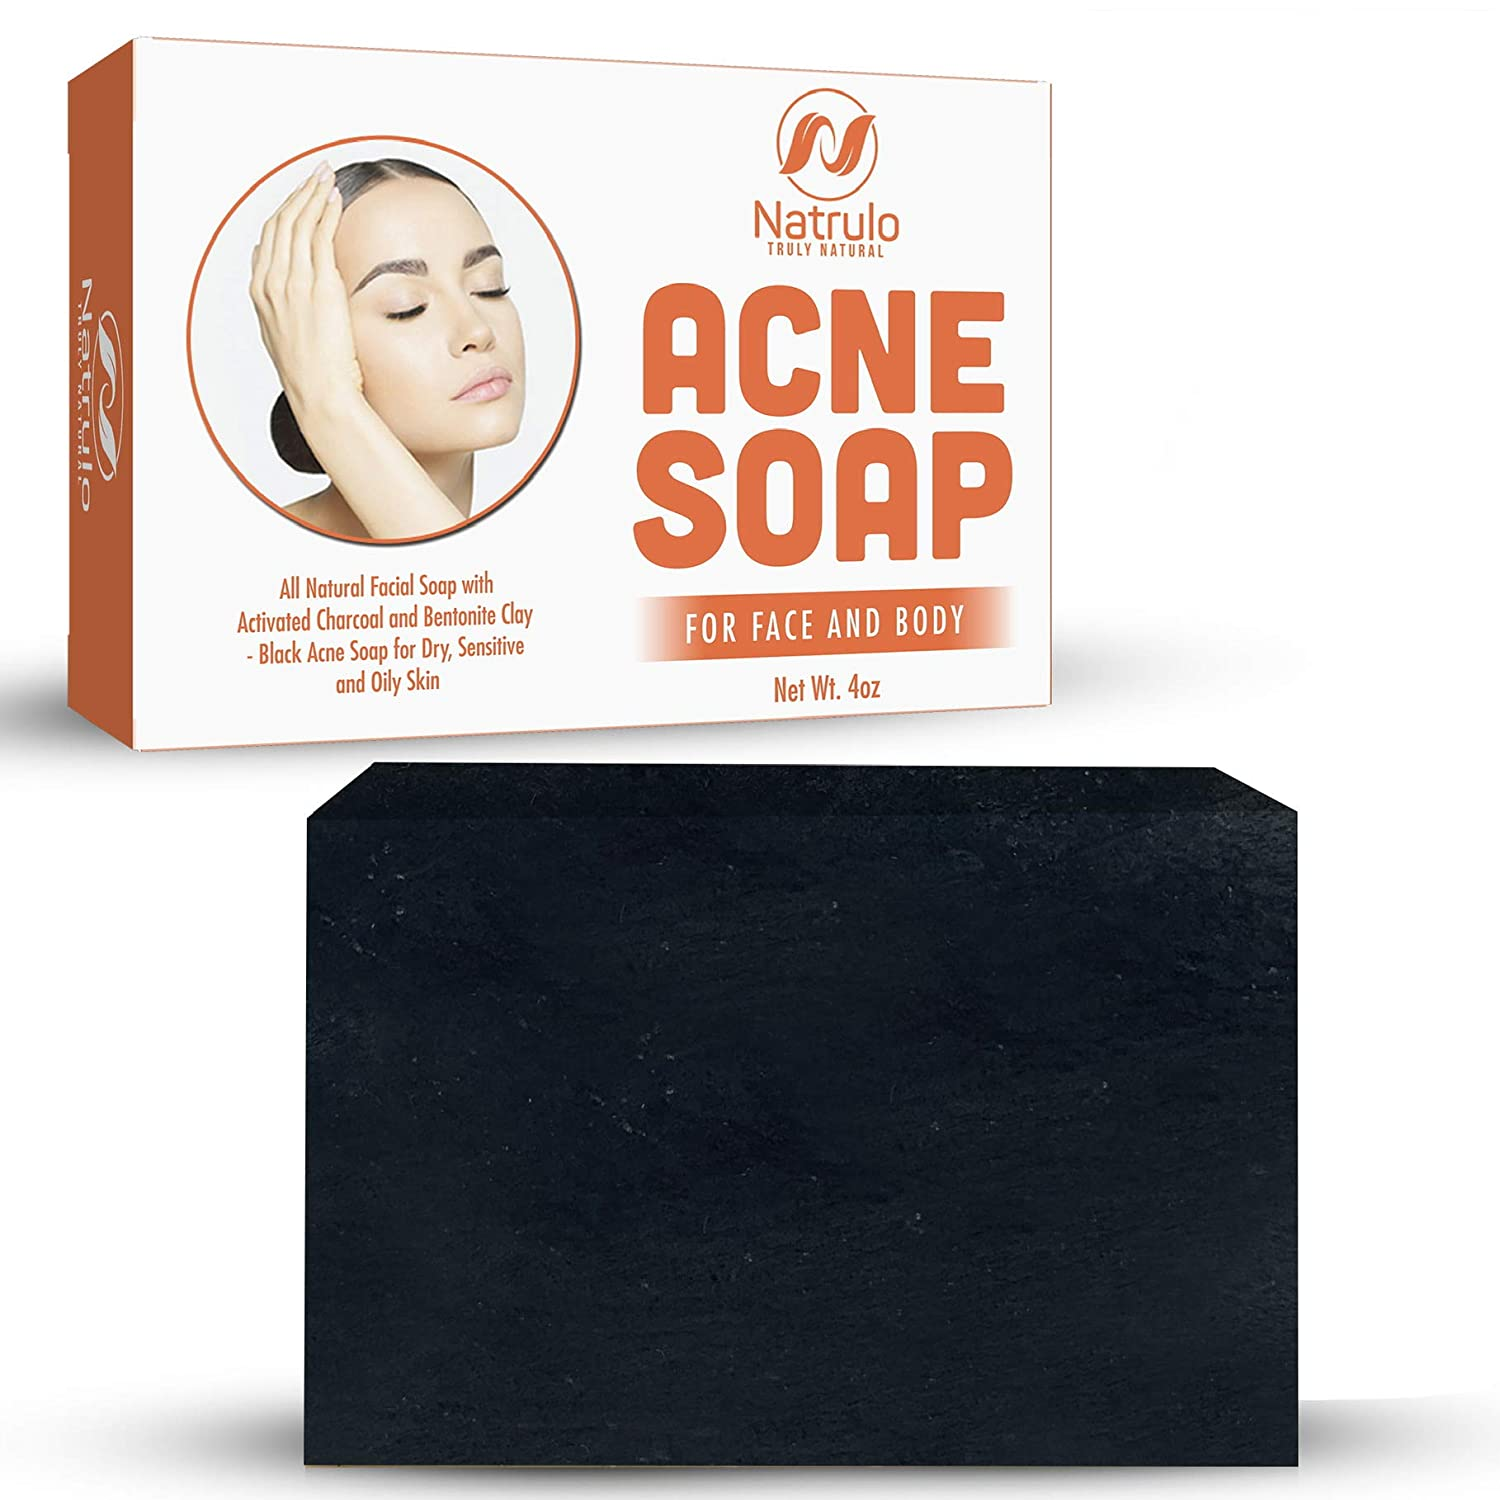 Natrulo Acne Bar Soap with Activated Charcoal & Bentonite Clay - Black Acne Soap for Dry, Sensitive & Oily Skin - All Natural Facial Soap for Pimples & Scars -Homeopathic Acne Treatment Made in USA